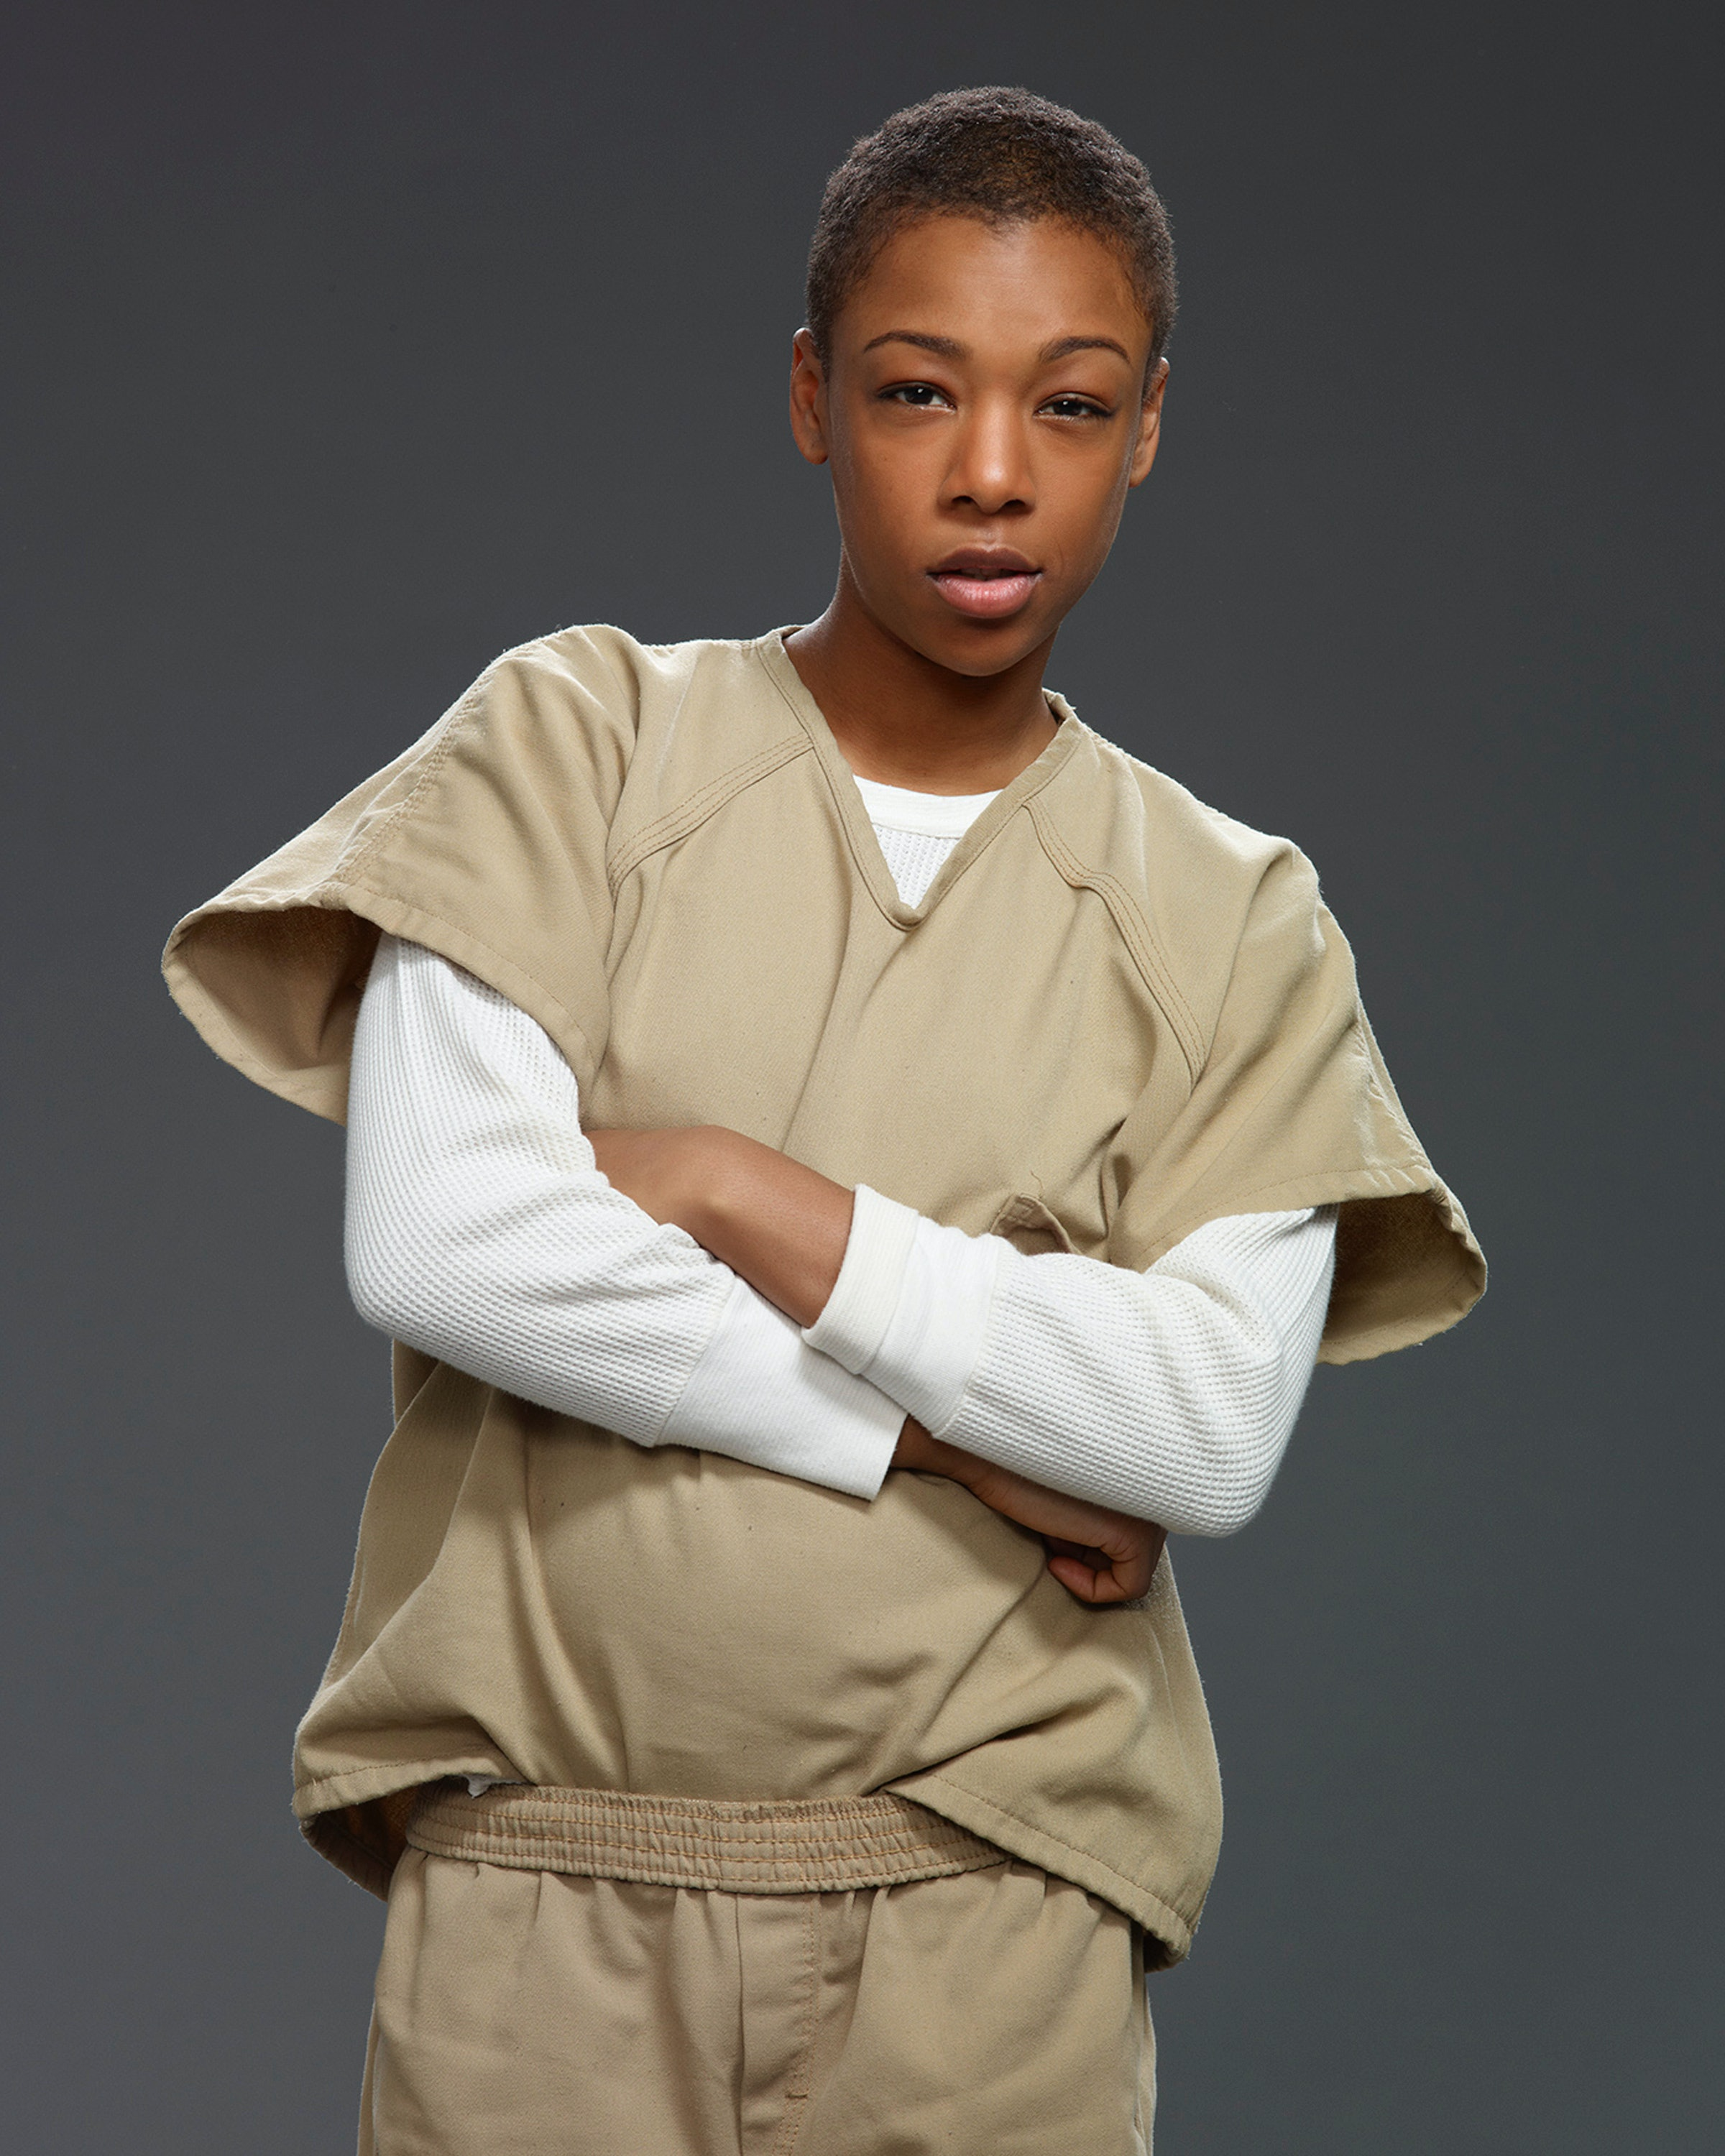 Orange is the new black author dating poussey